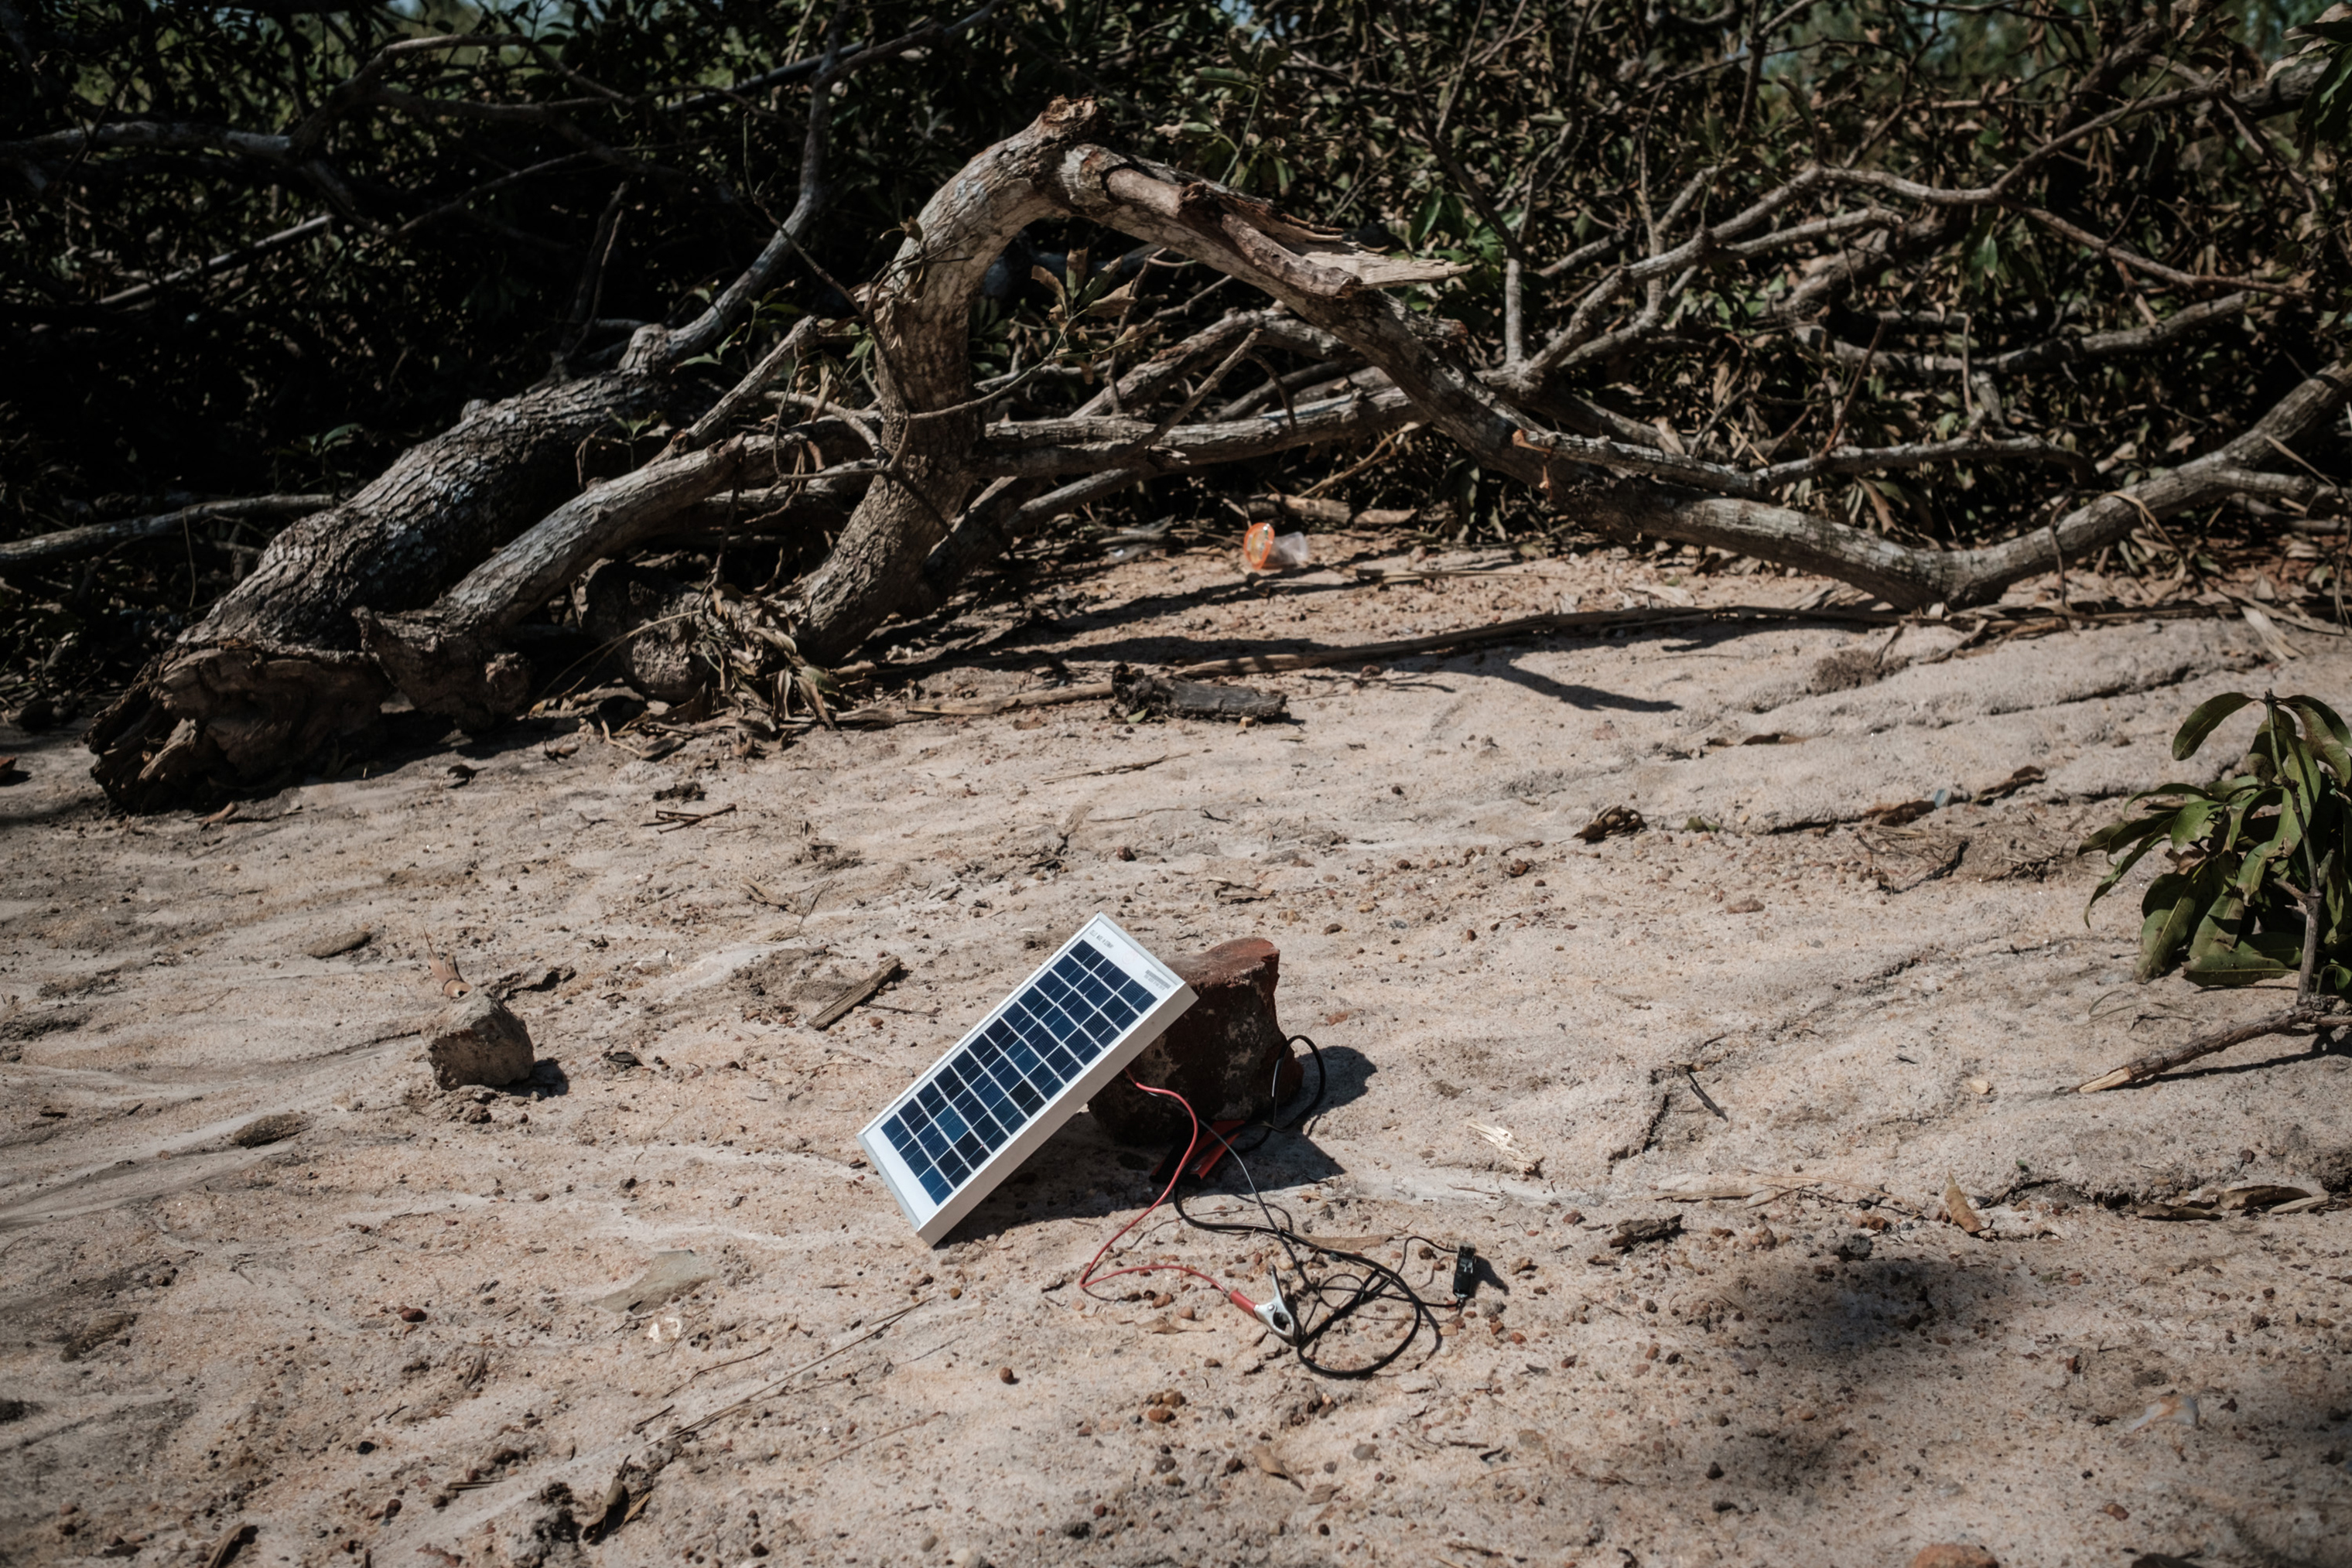 A solar charger is seen beside trees destroyed by cyclone Idai in Tica, Mozambique, on March 24, 2019.